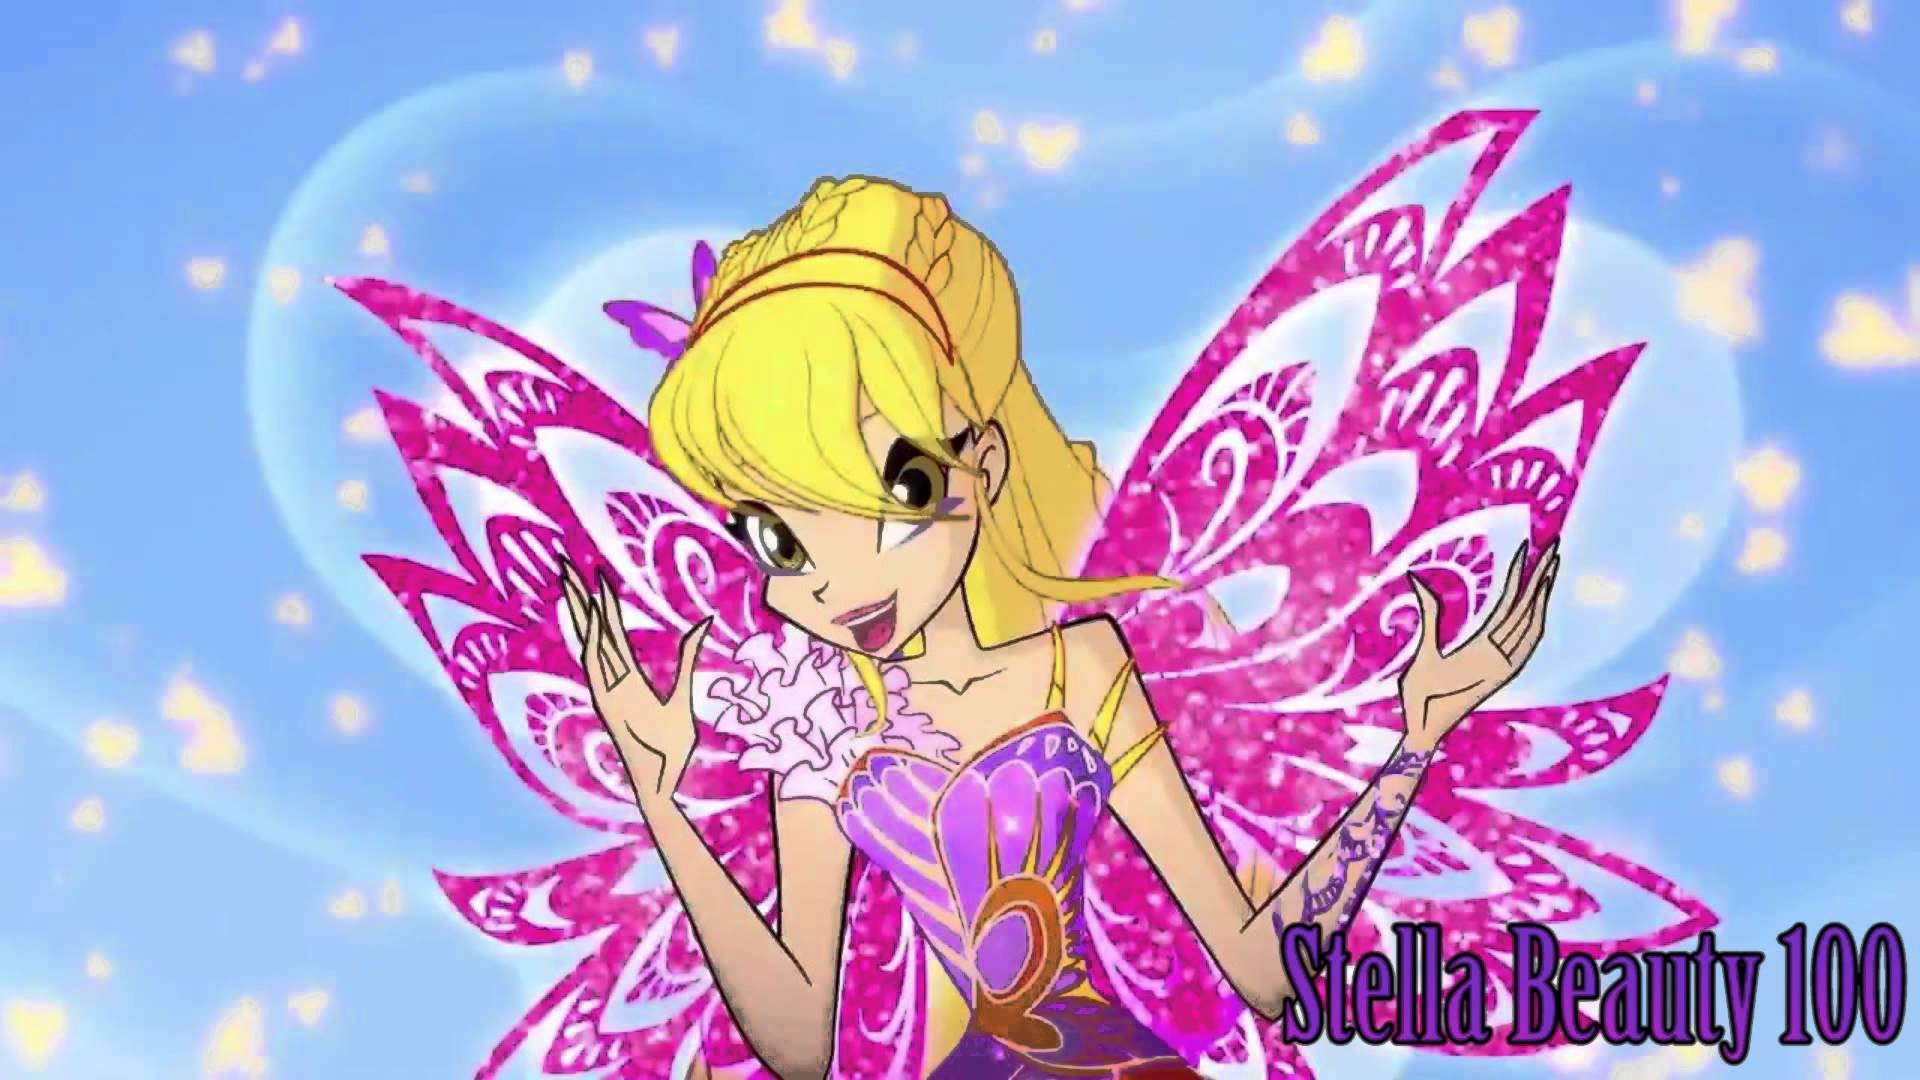 Winx Club Wallpaper (66+ images)